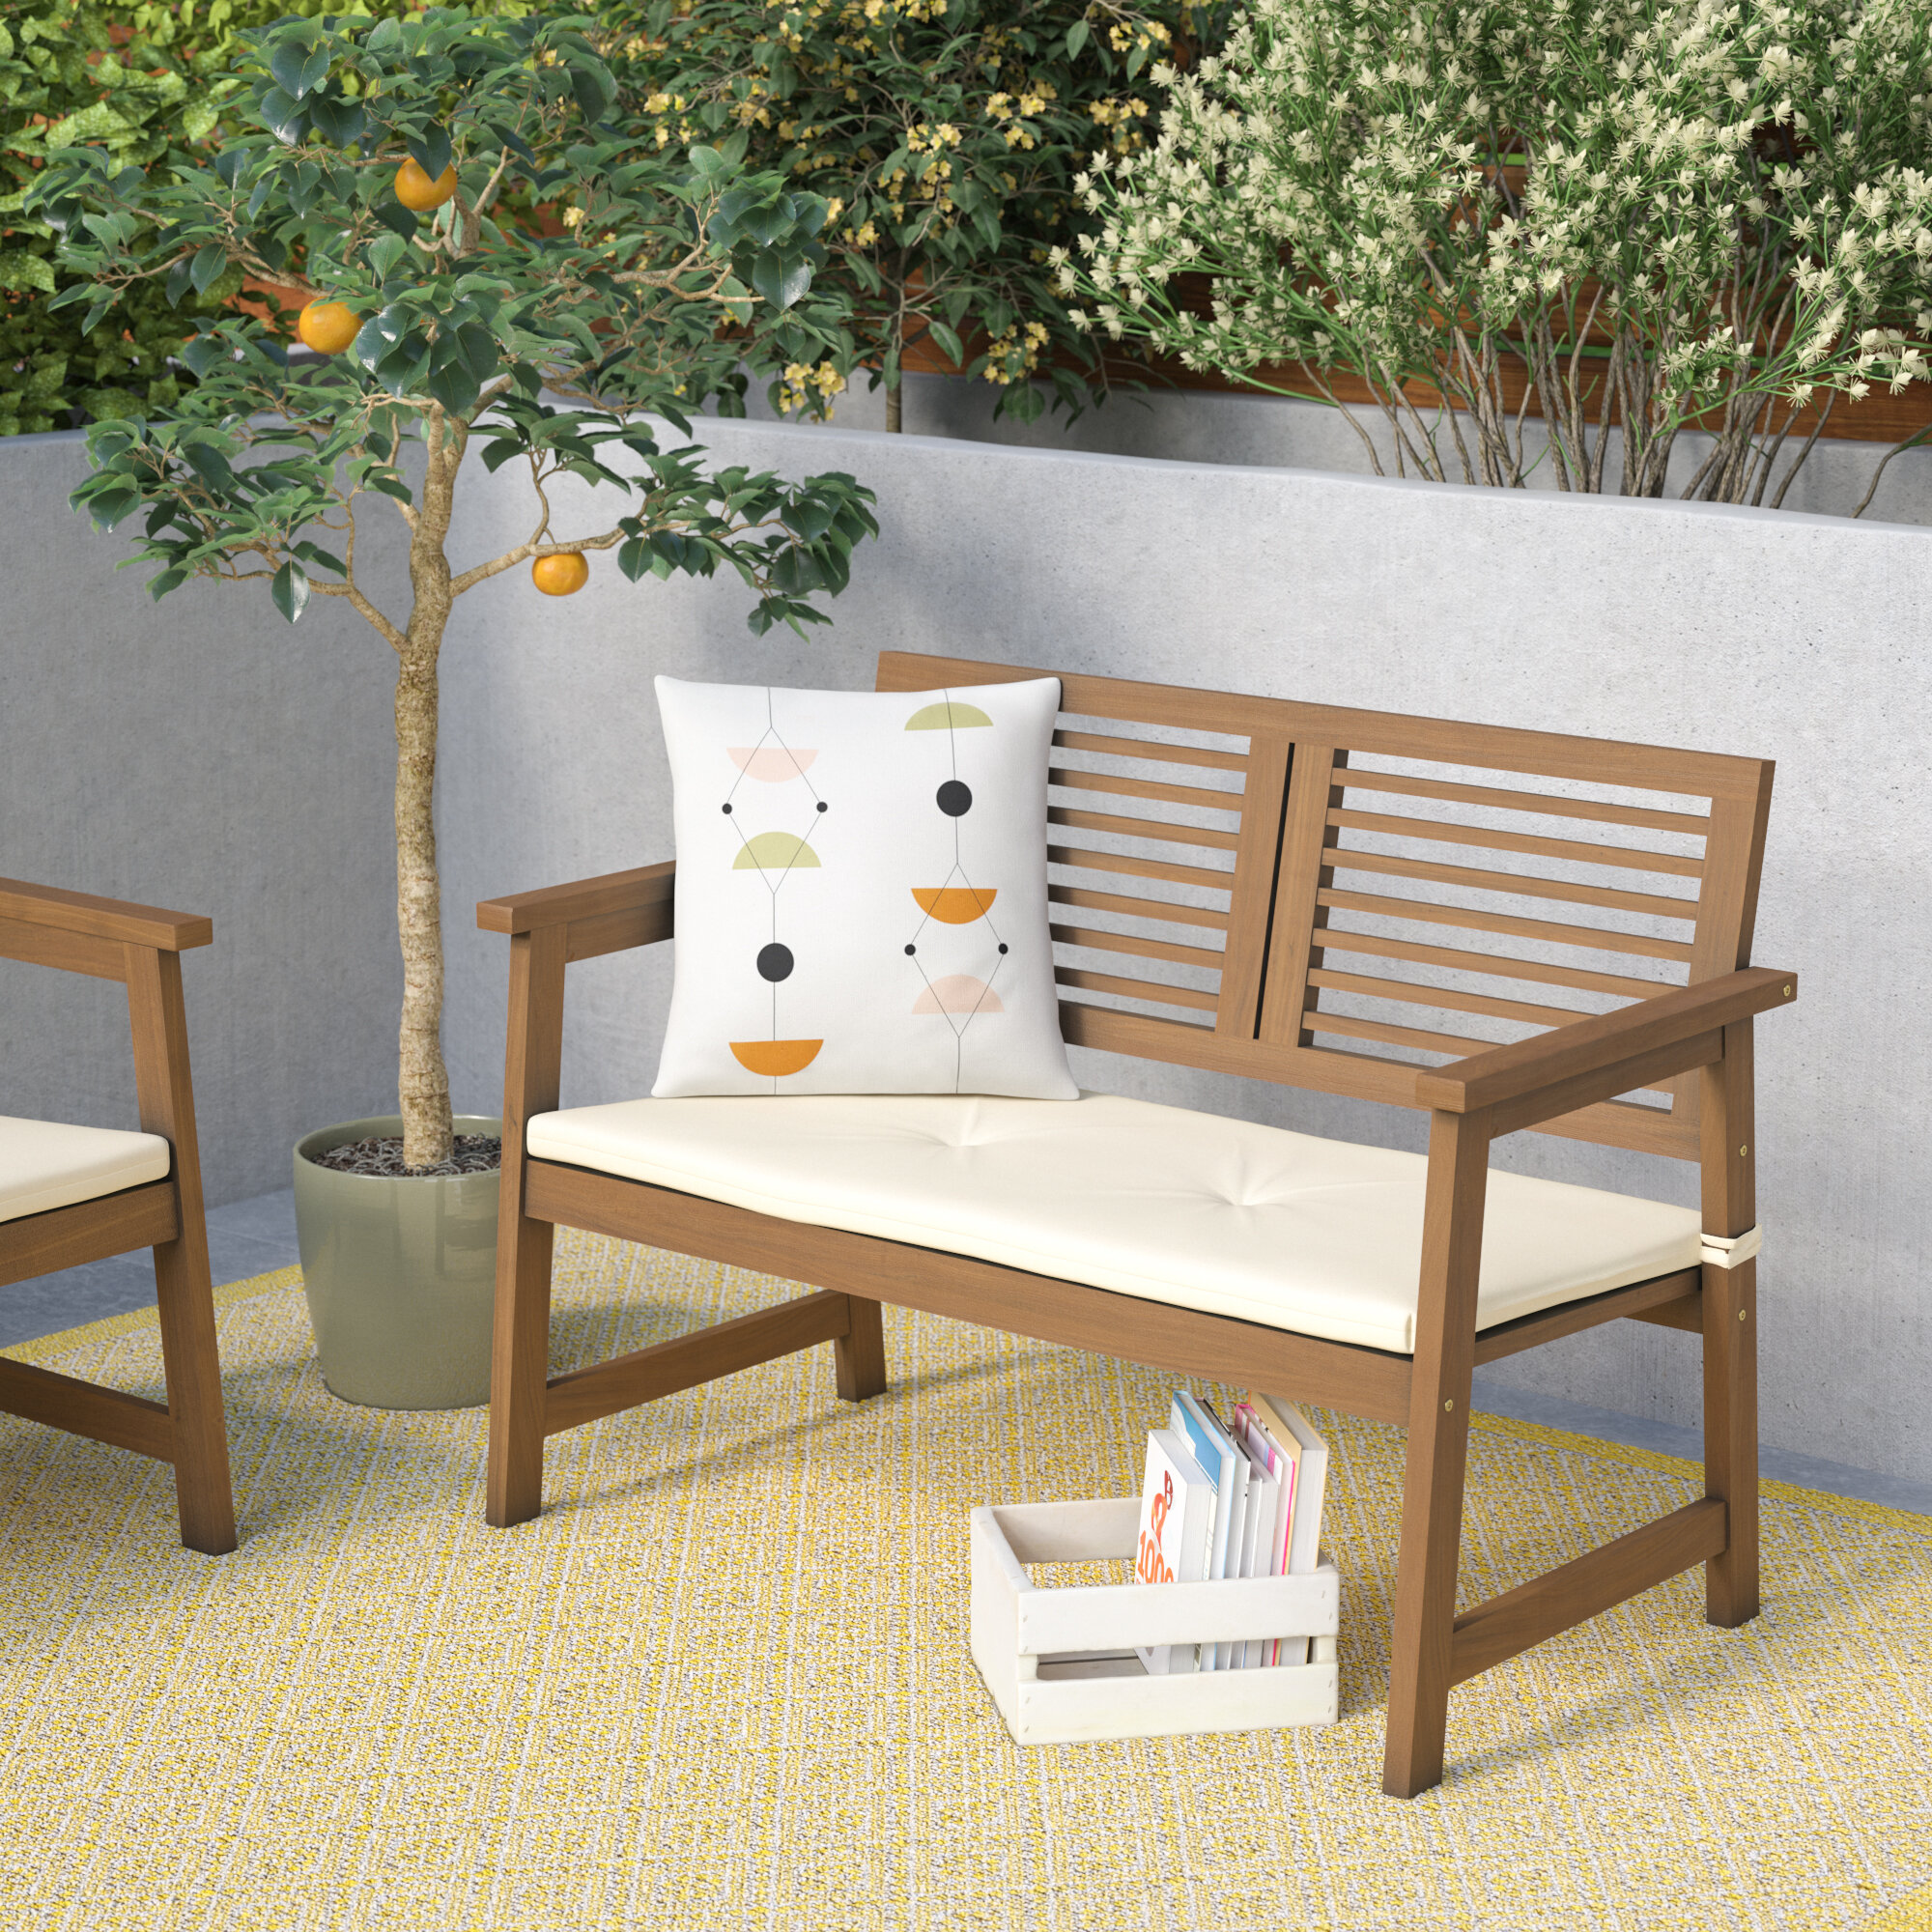 table and en picnic us umbrella with cushions d set navy stripes outdoor white bench